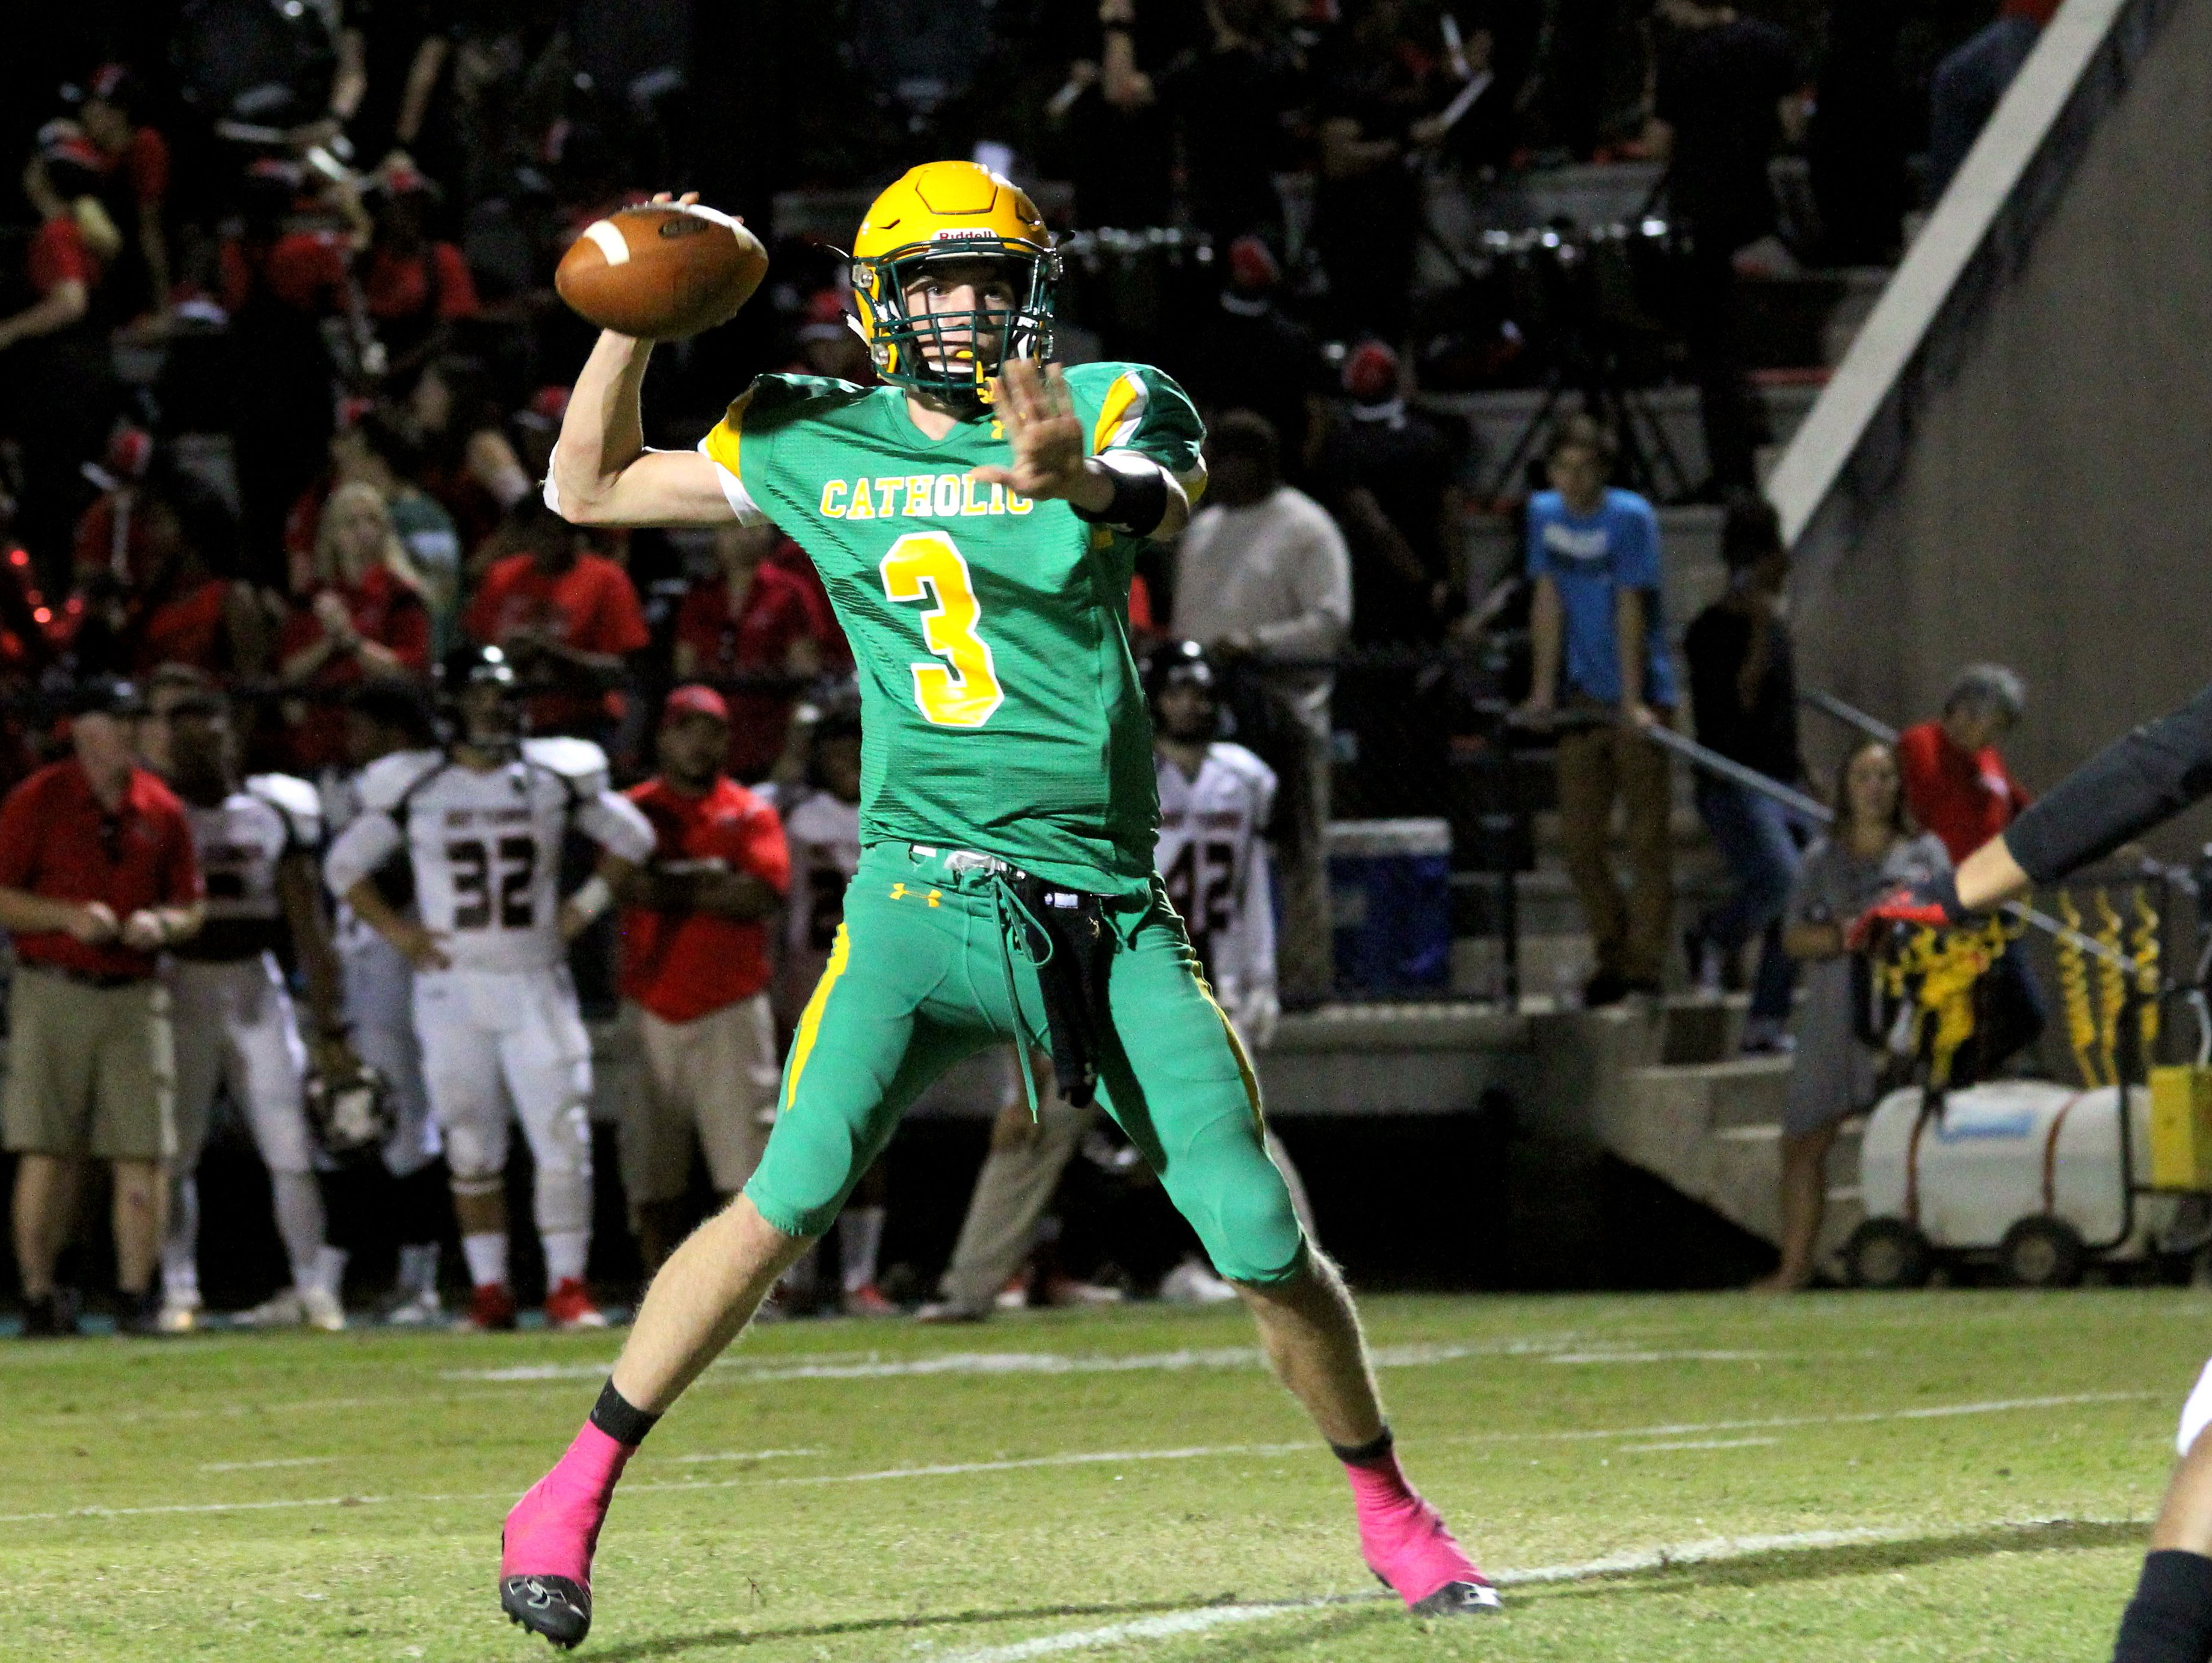 Catholic's Garrett Foley is set to pass during the Crusader's fourth-quarter TD drive.